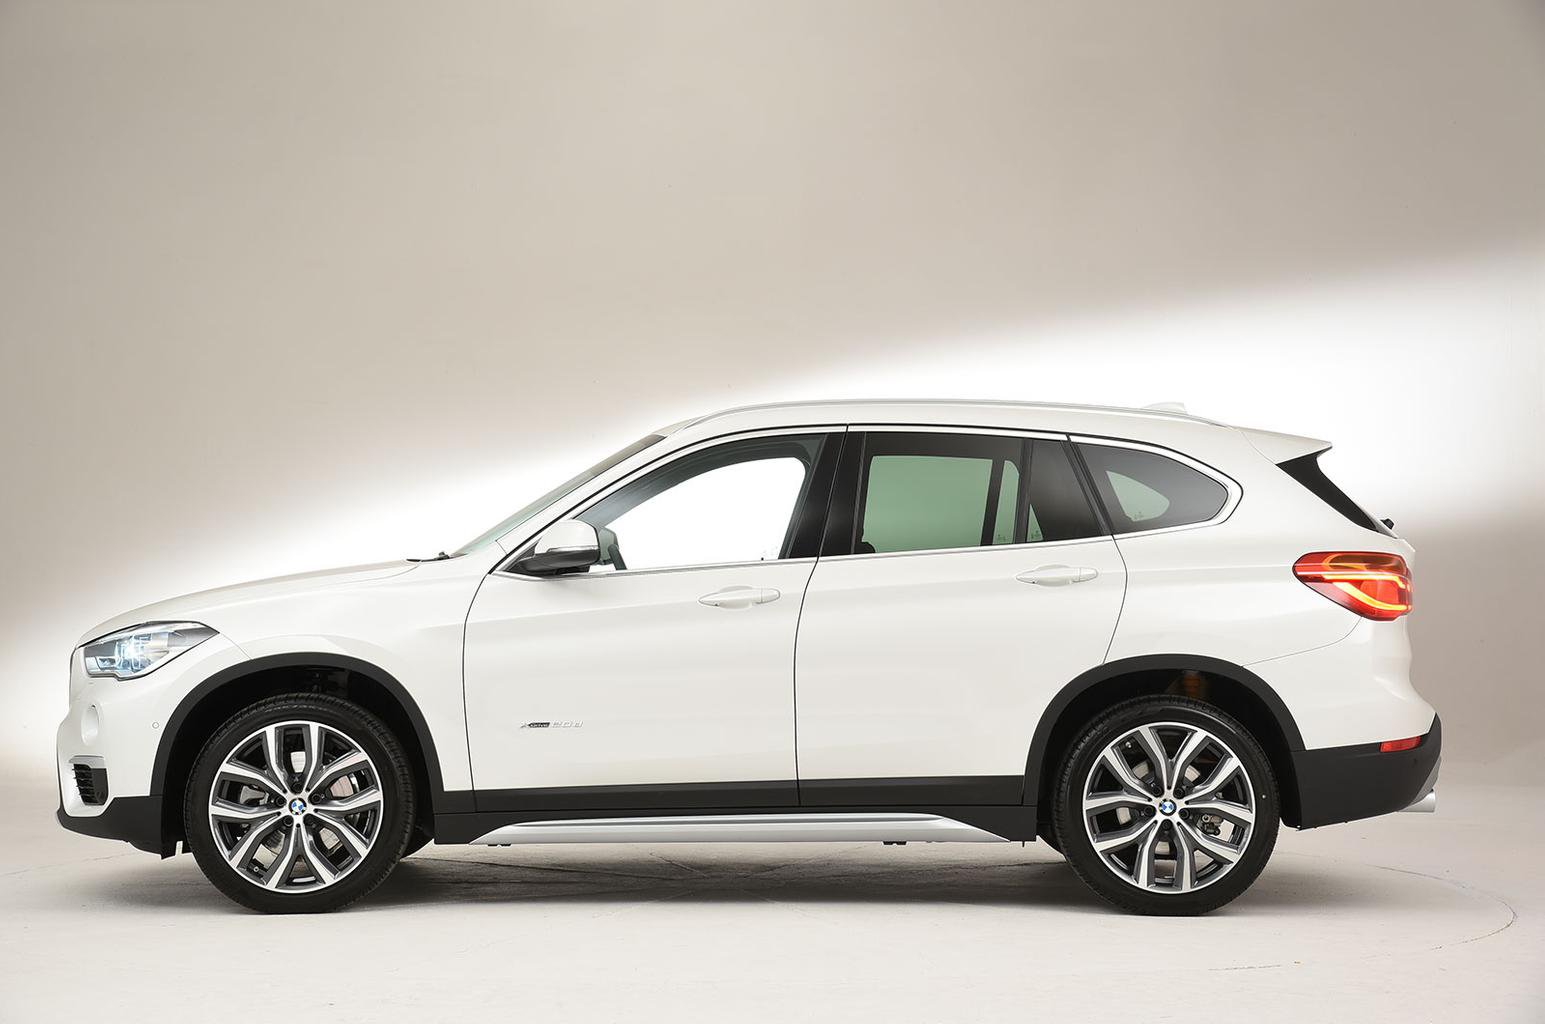 2015 BMW X1: readers give their verdict